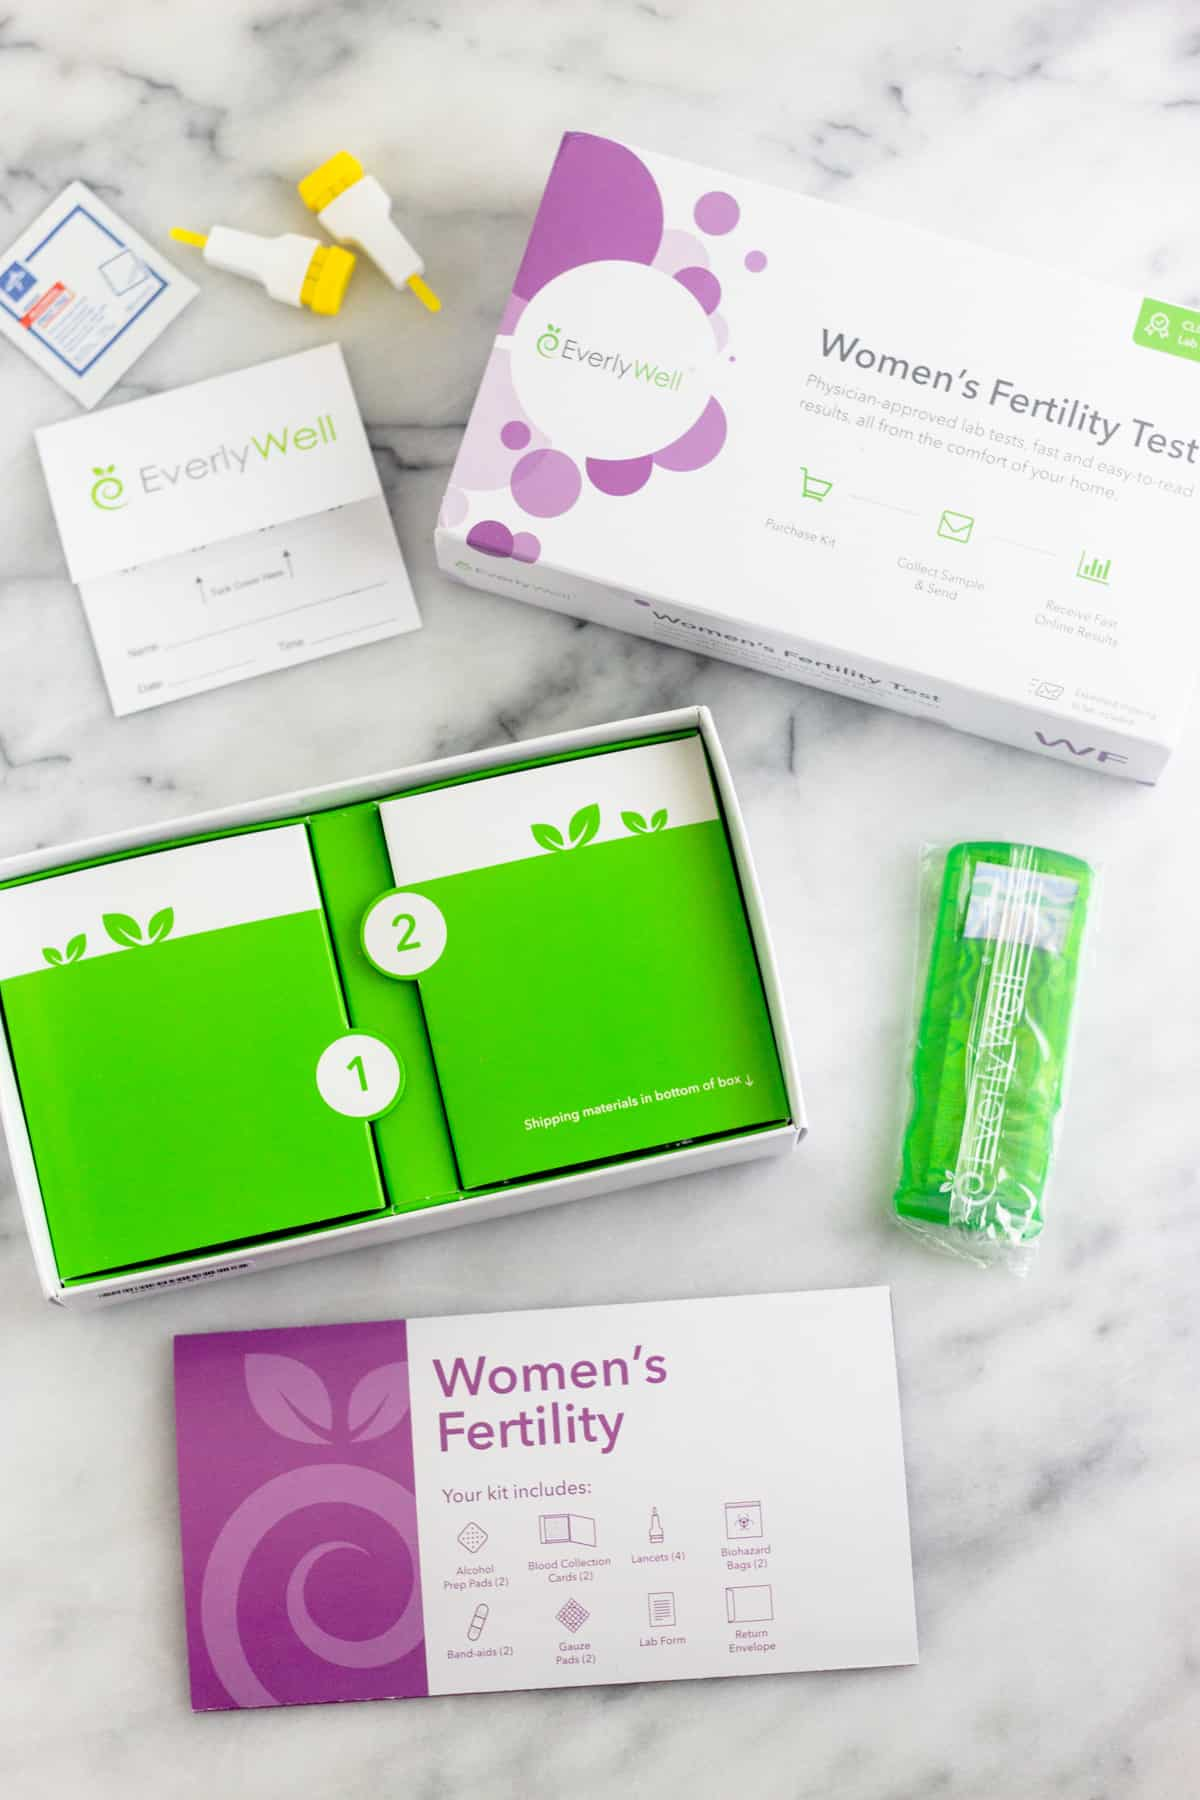 Women's Fertility Testing at Home with EverlyWell - Eat the